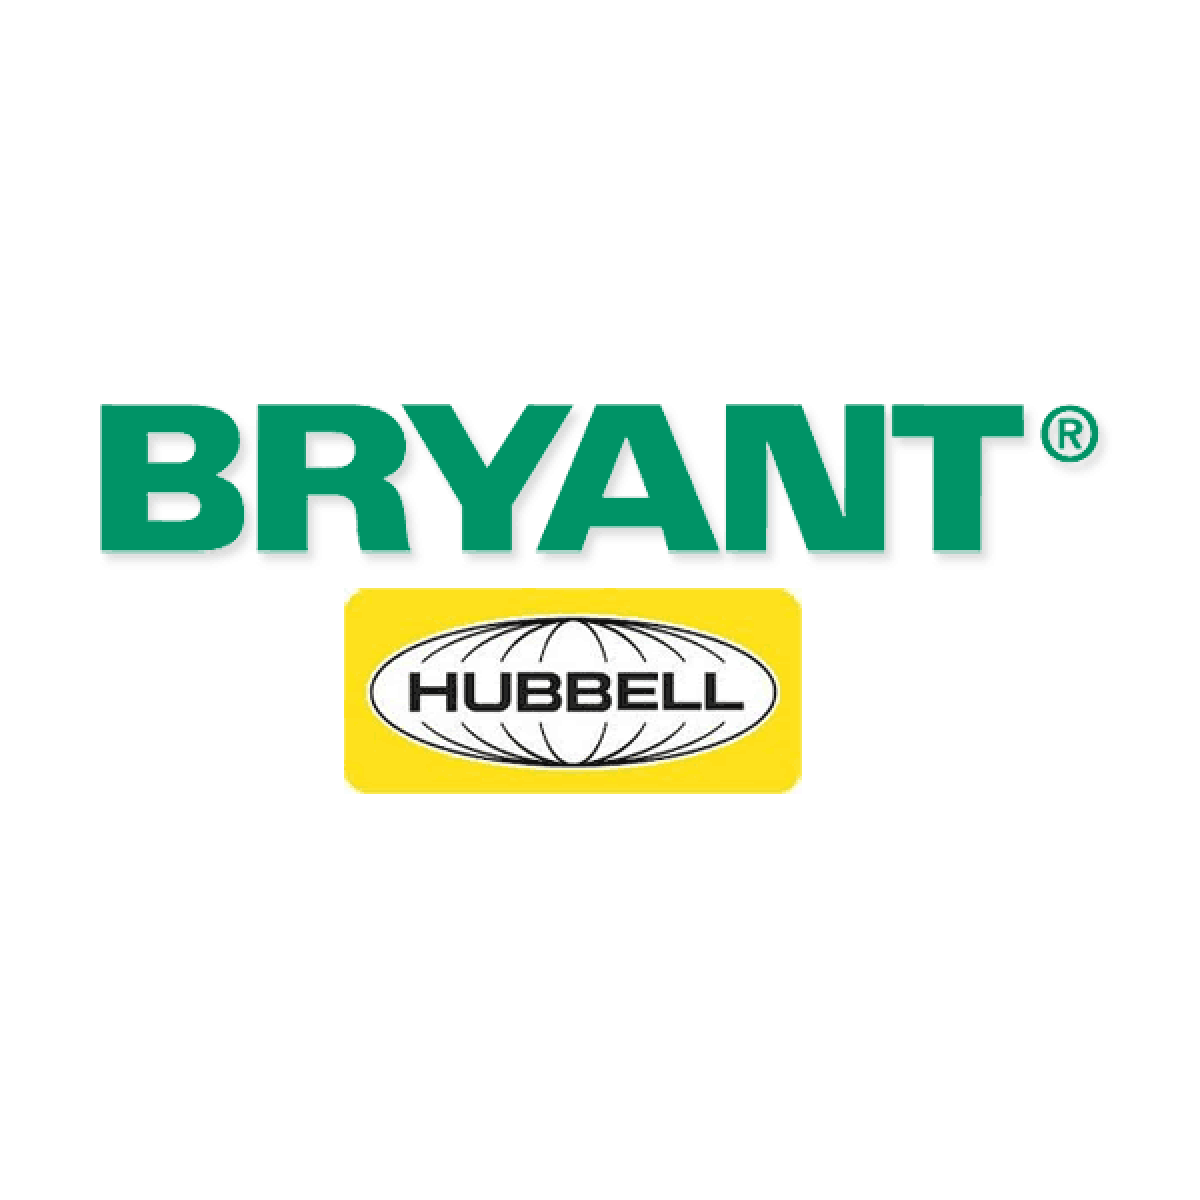 bryant-hubbell